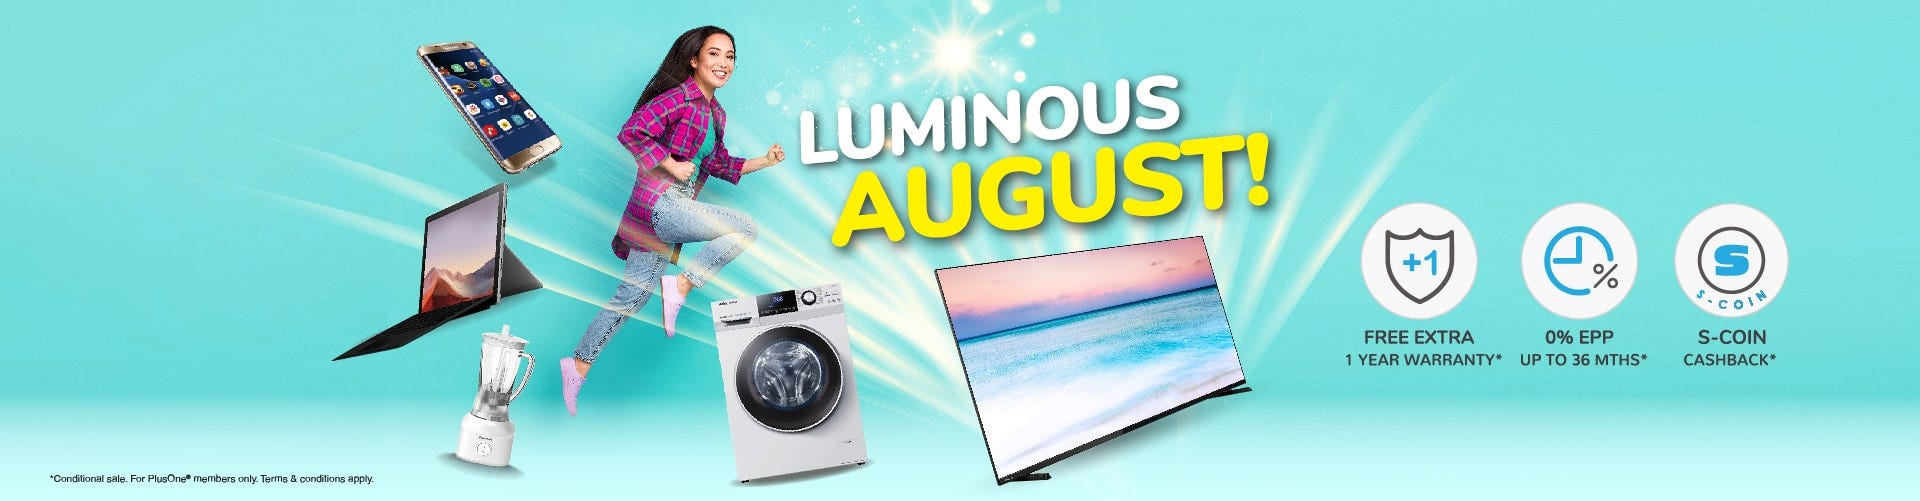 Monthly Promotion | August